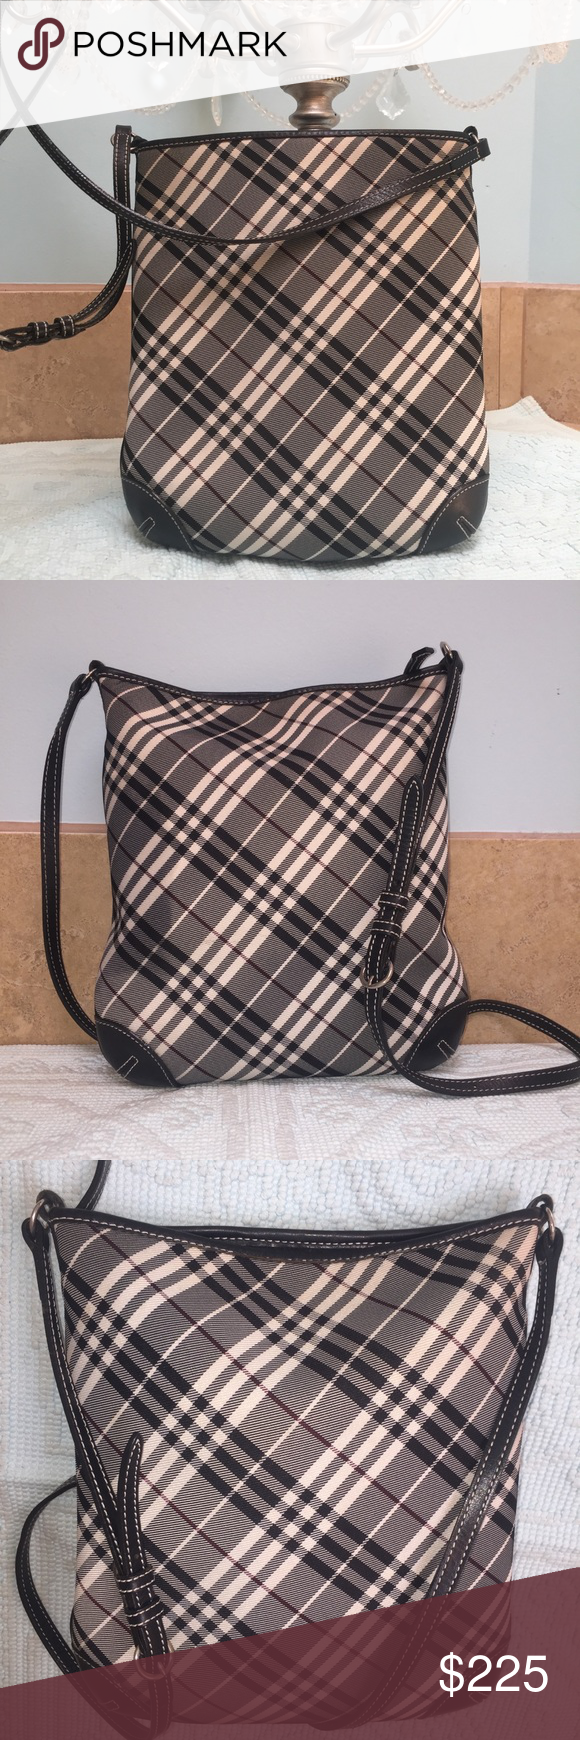 9319a41b5259 Auth Burberry Black Cross Body shoulder Bag Authentic Burberry from London  Blue Label division